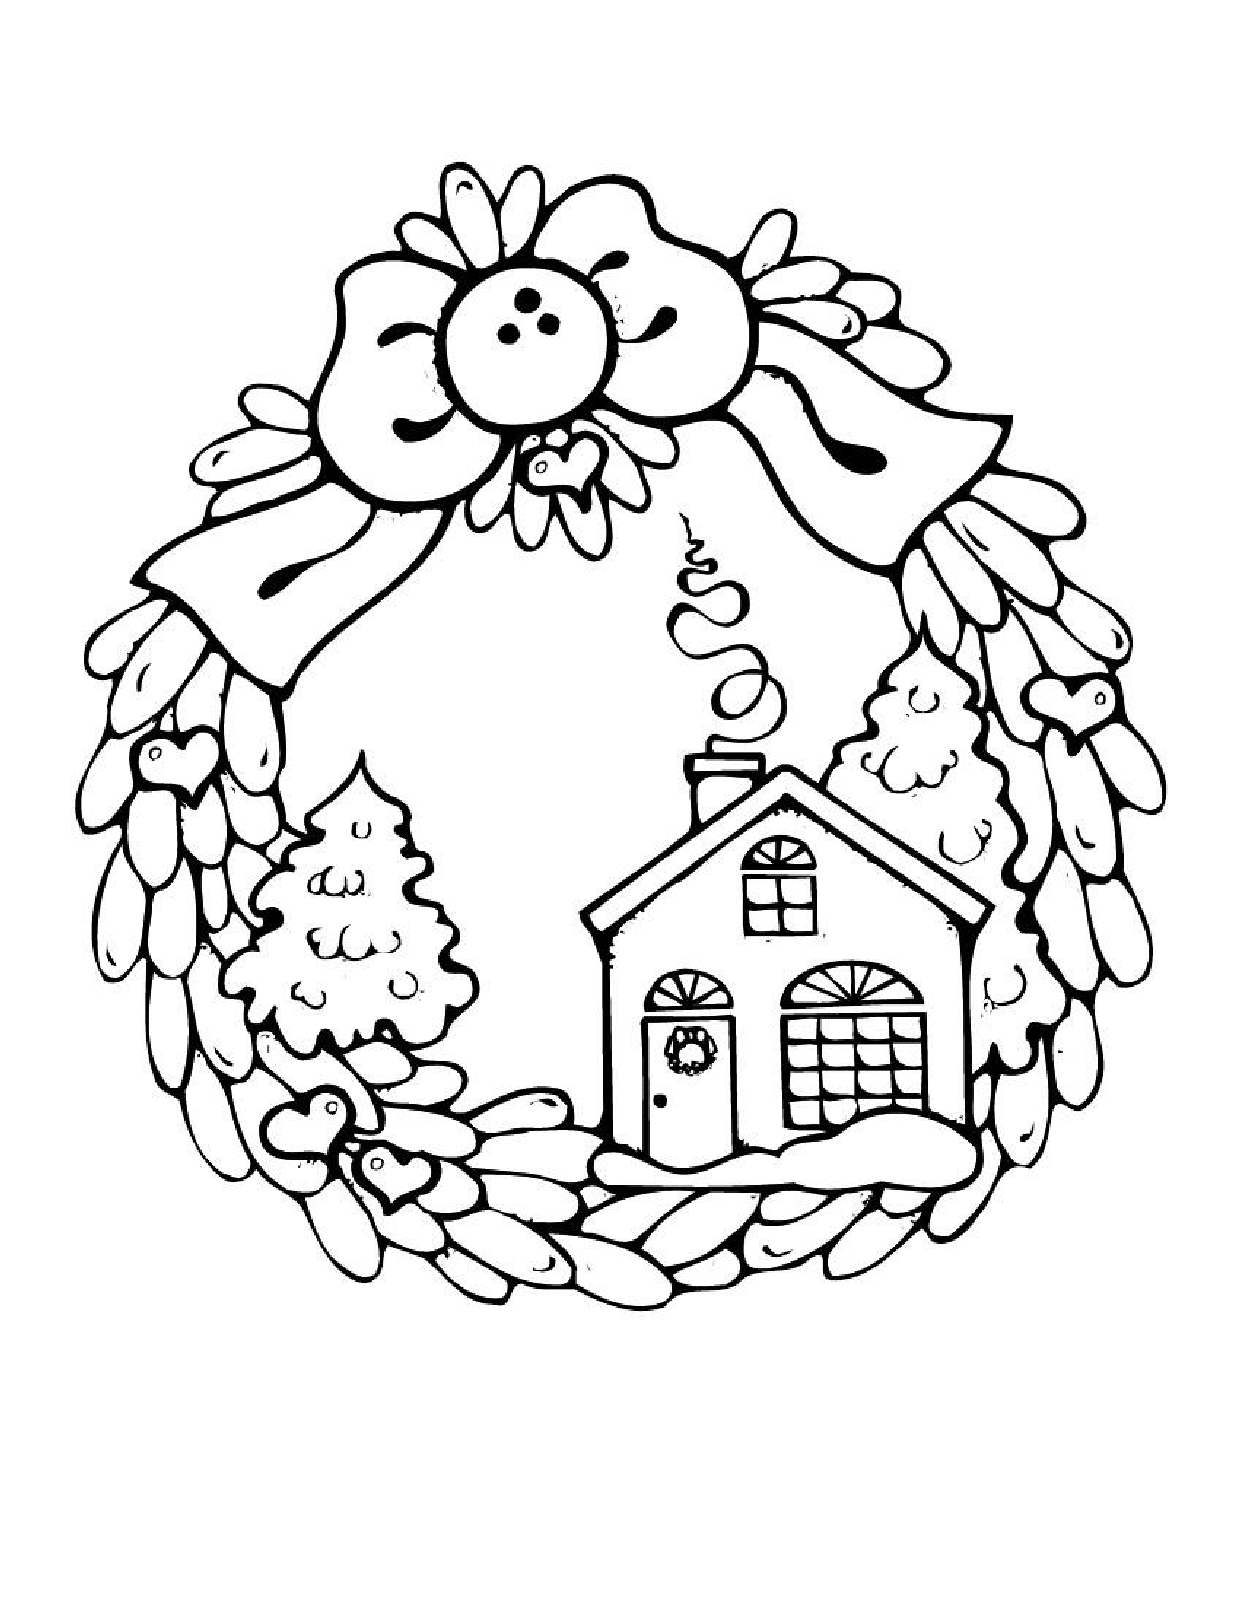 Download Free Coloring Pages For Adults At Getdrawings